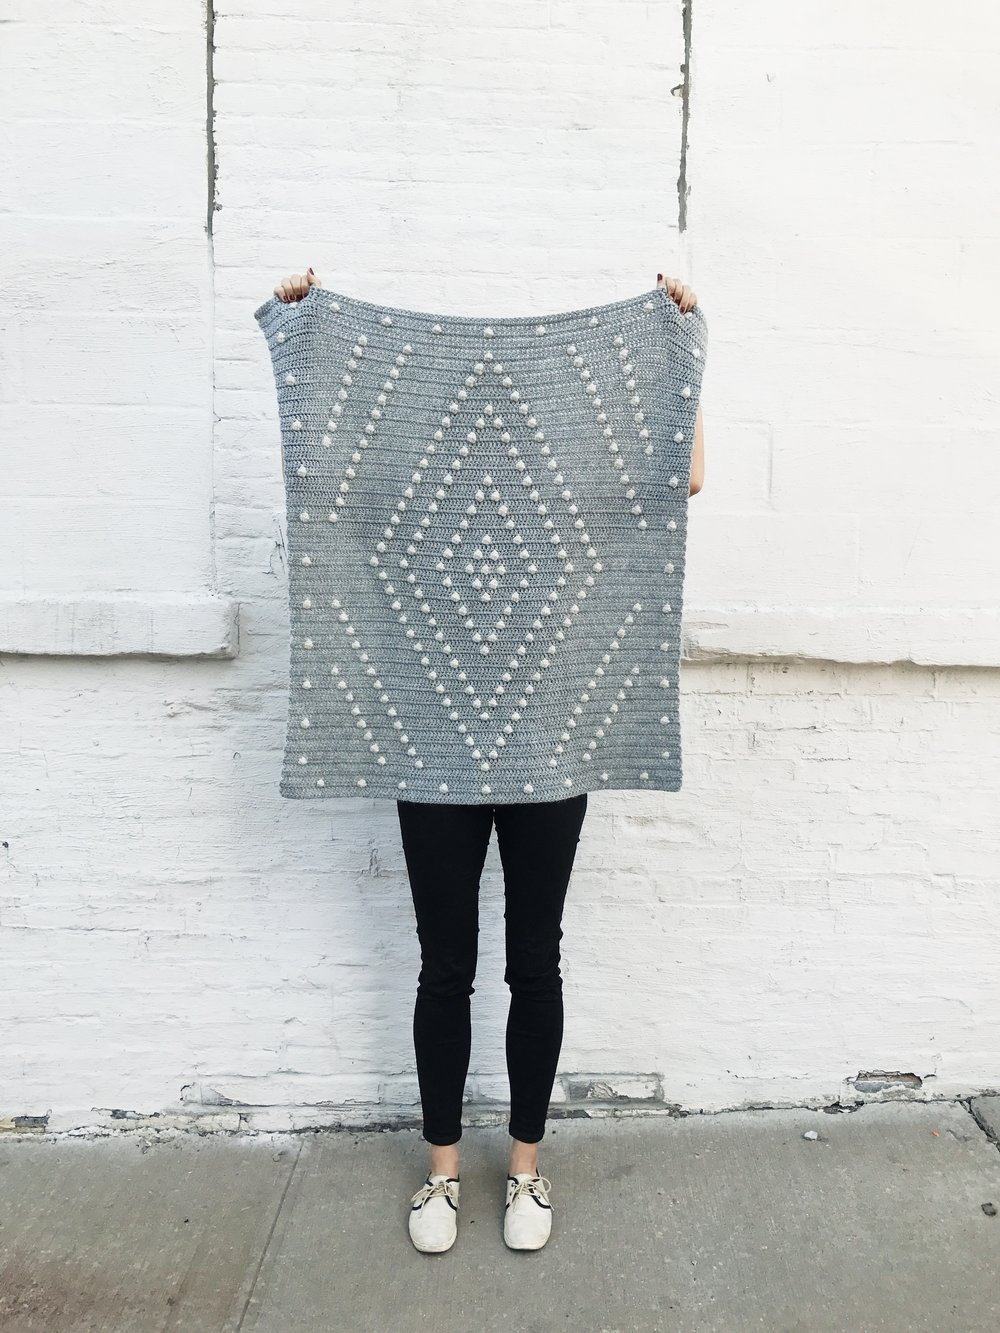 Theory of Light Blanket by Two of Wands